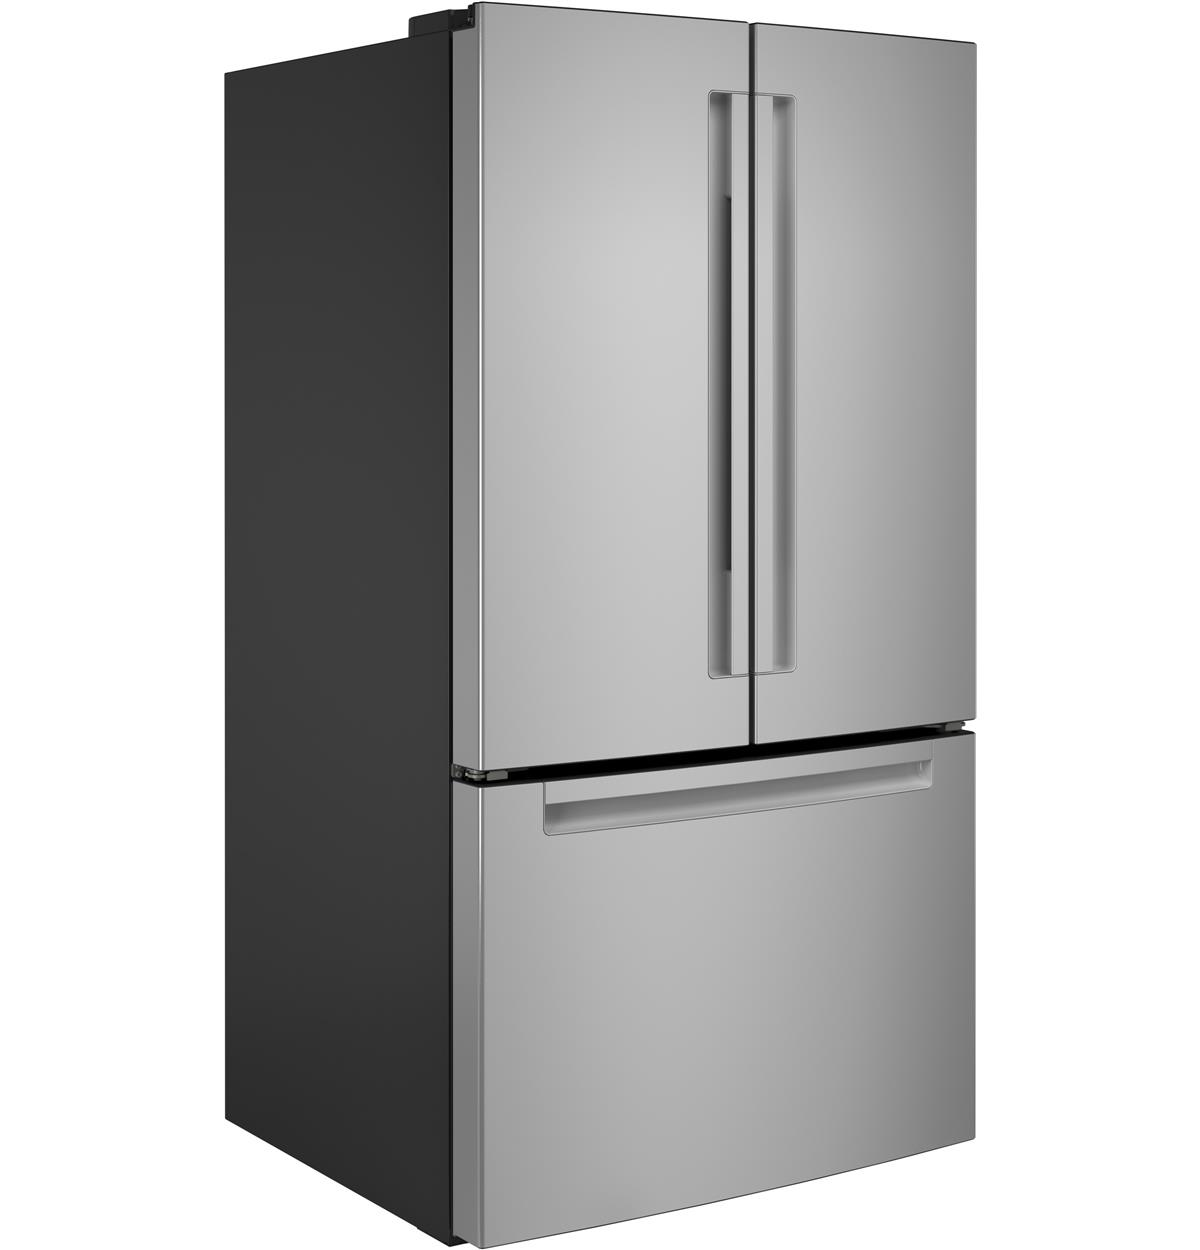 Stainless Steel Bottom-Freezer QNE27JSMSS Un-installed/free-standing